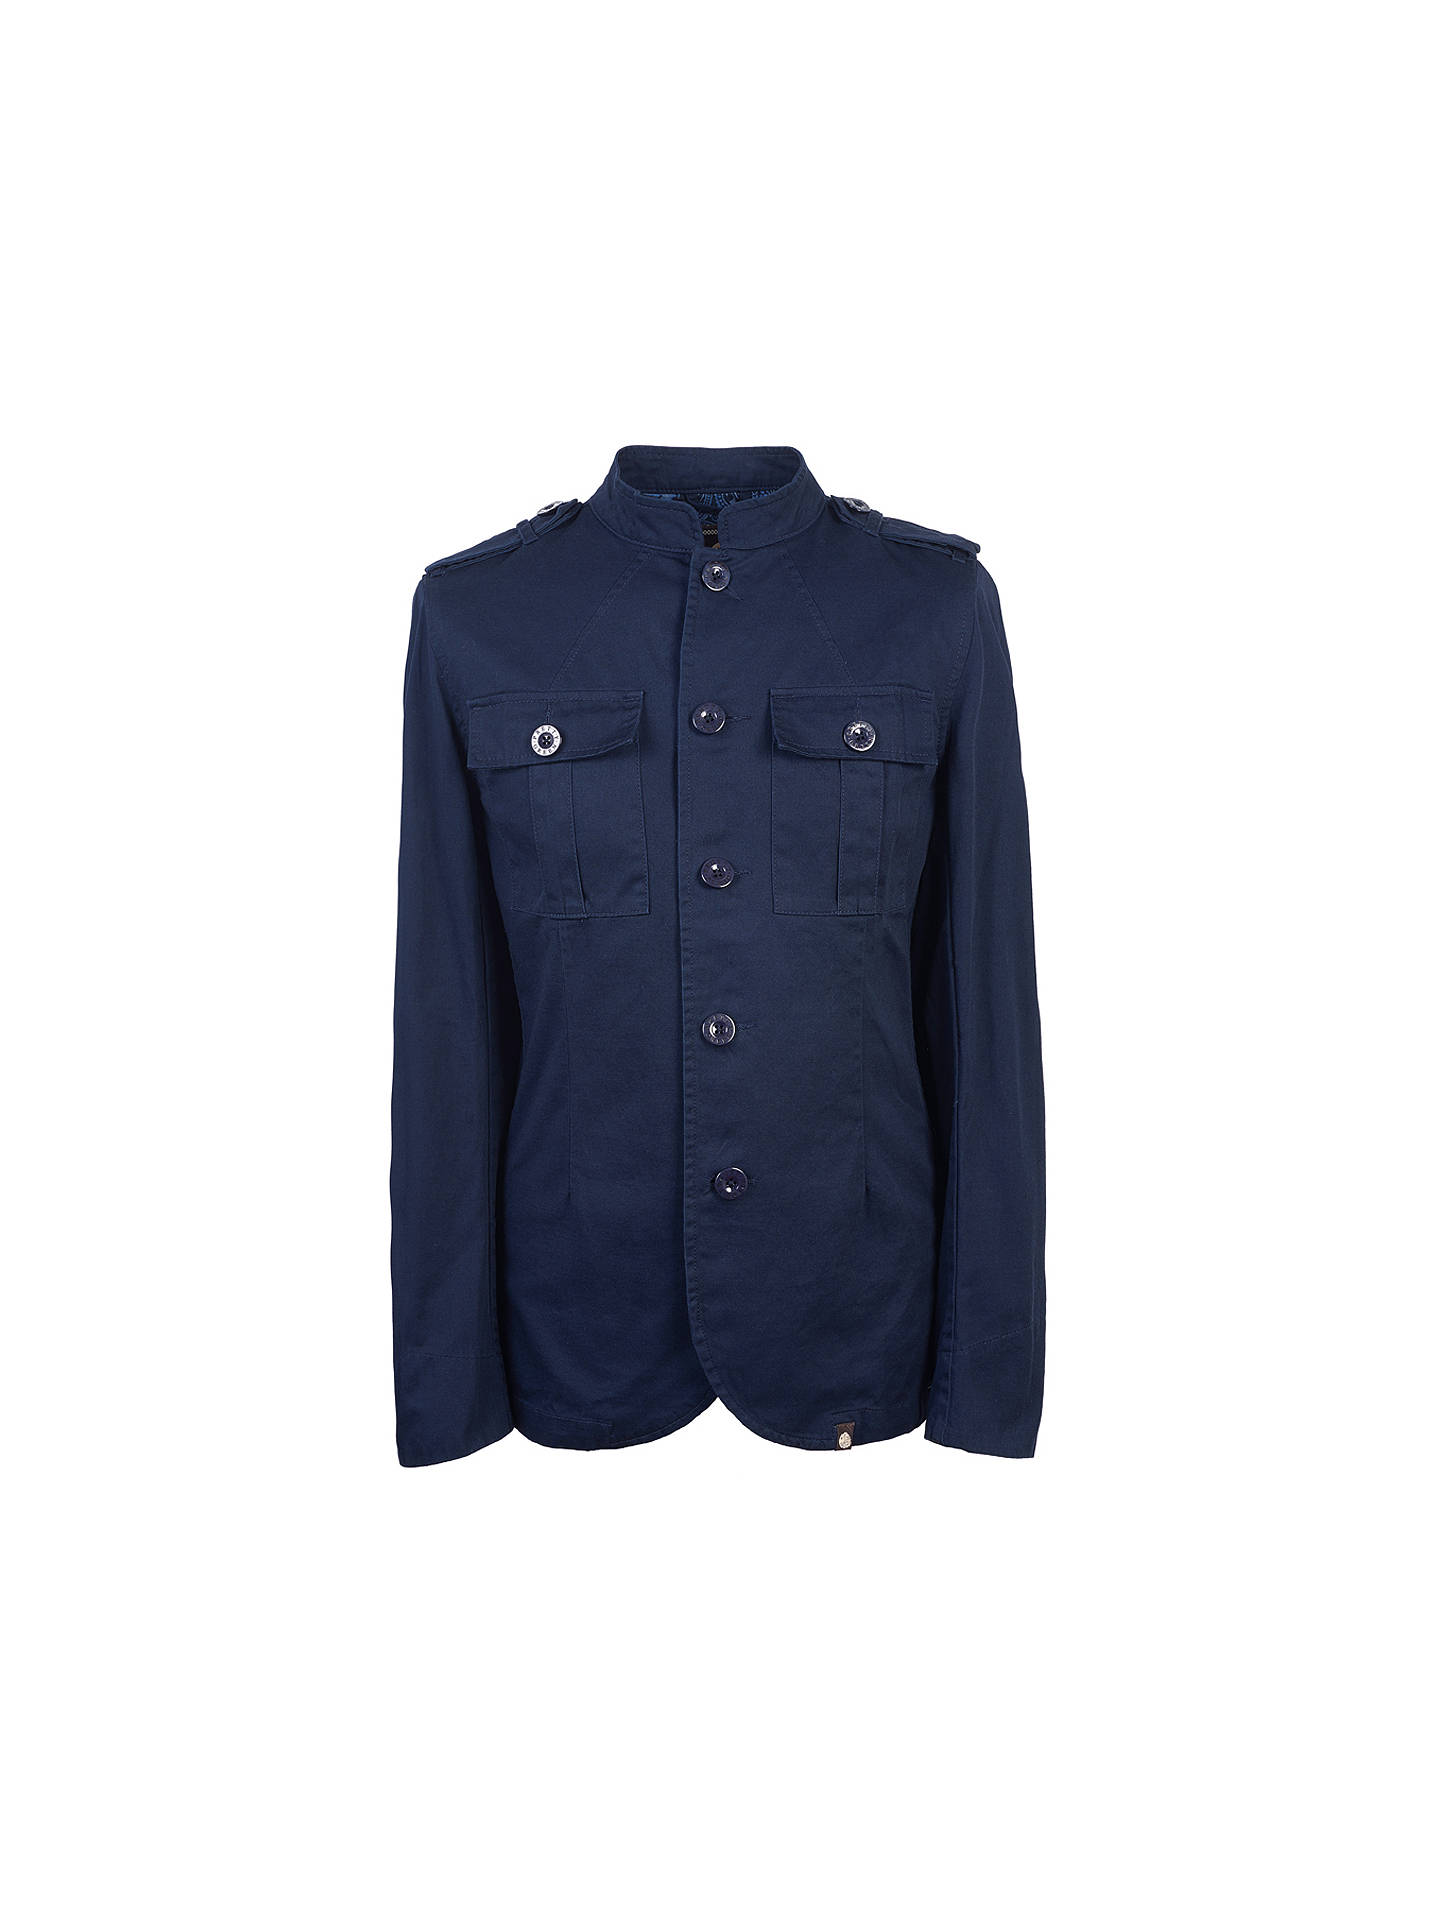 590ab961a934 ... Buy Pretty Green Langford Military Jacket, Navy, S Online at  johnlewis.com